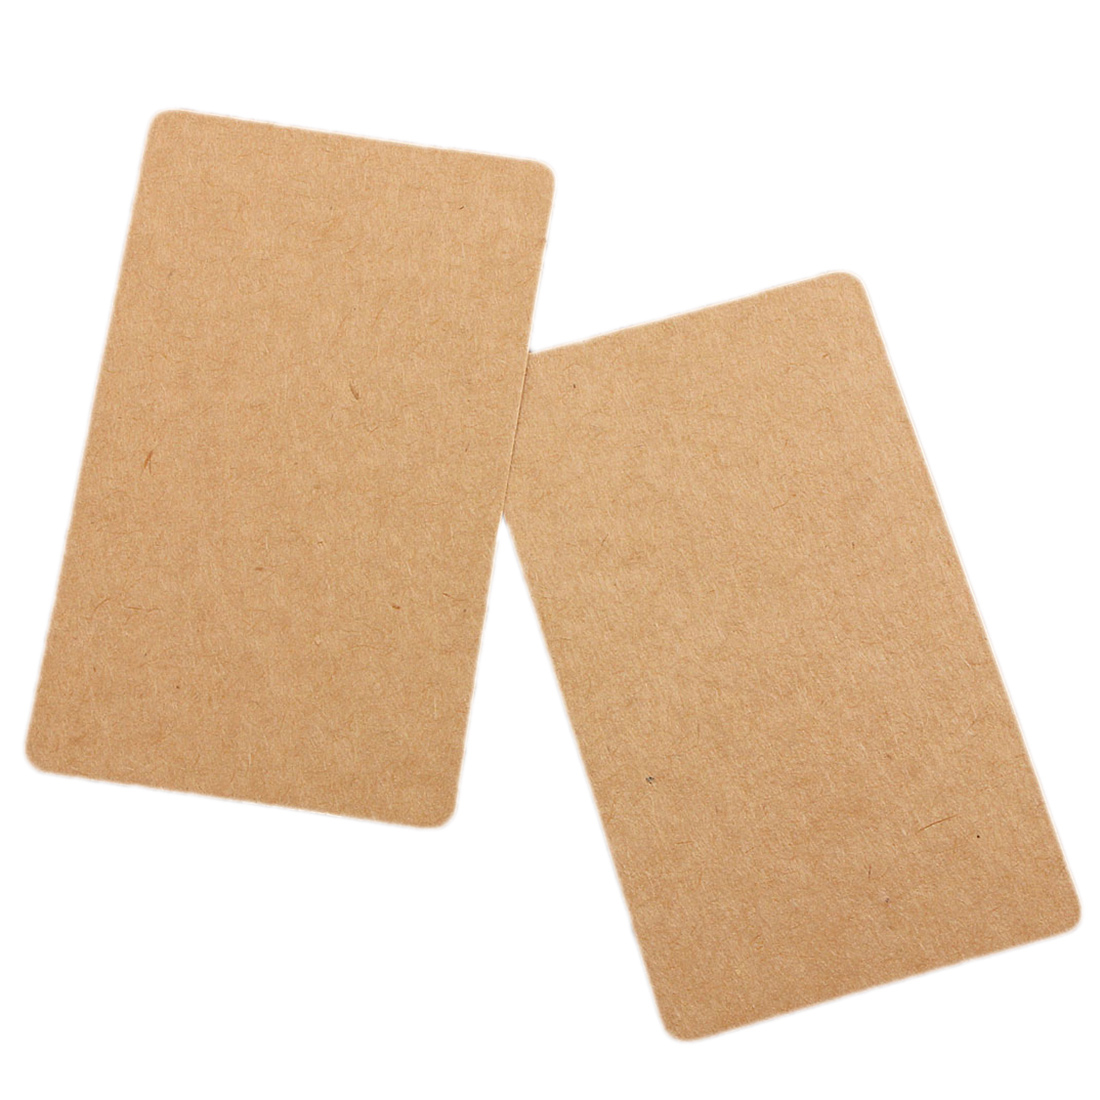 100 Brown Kraft Label Paper Tag Blank Luggage Card Party Wedding Hang Gift Favor